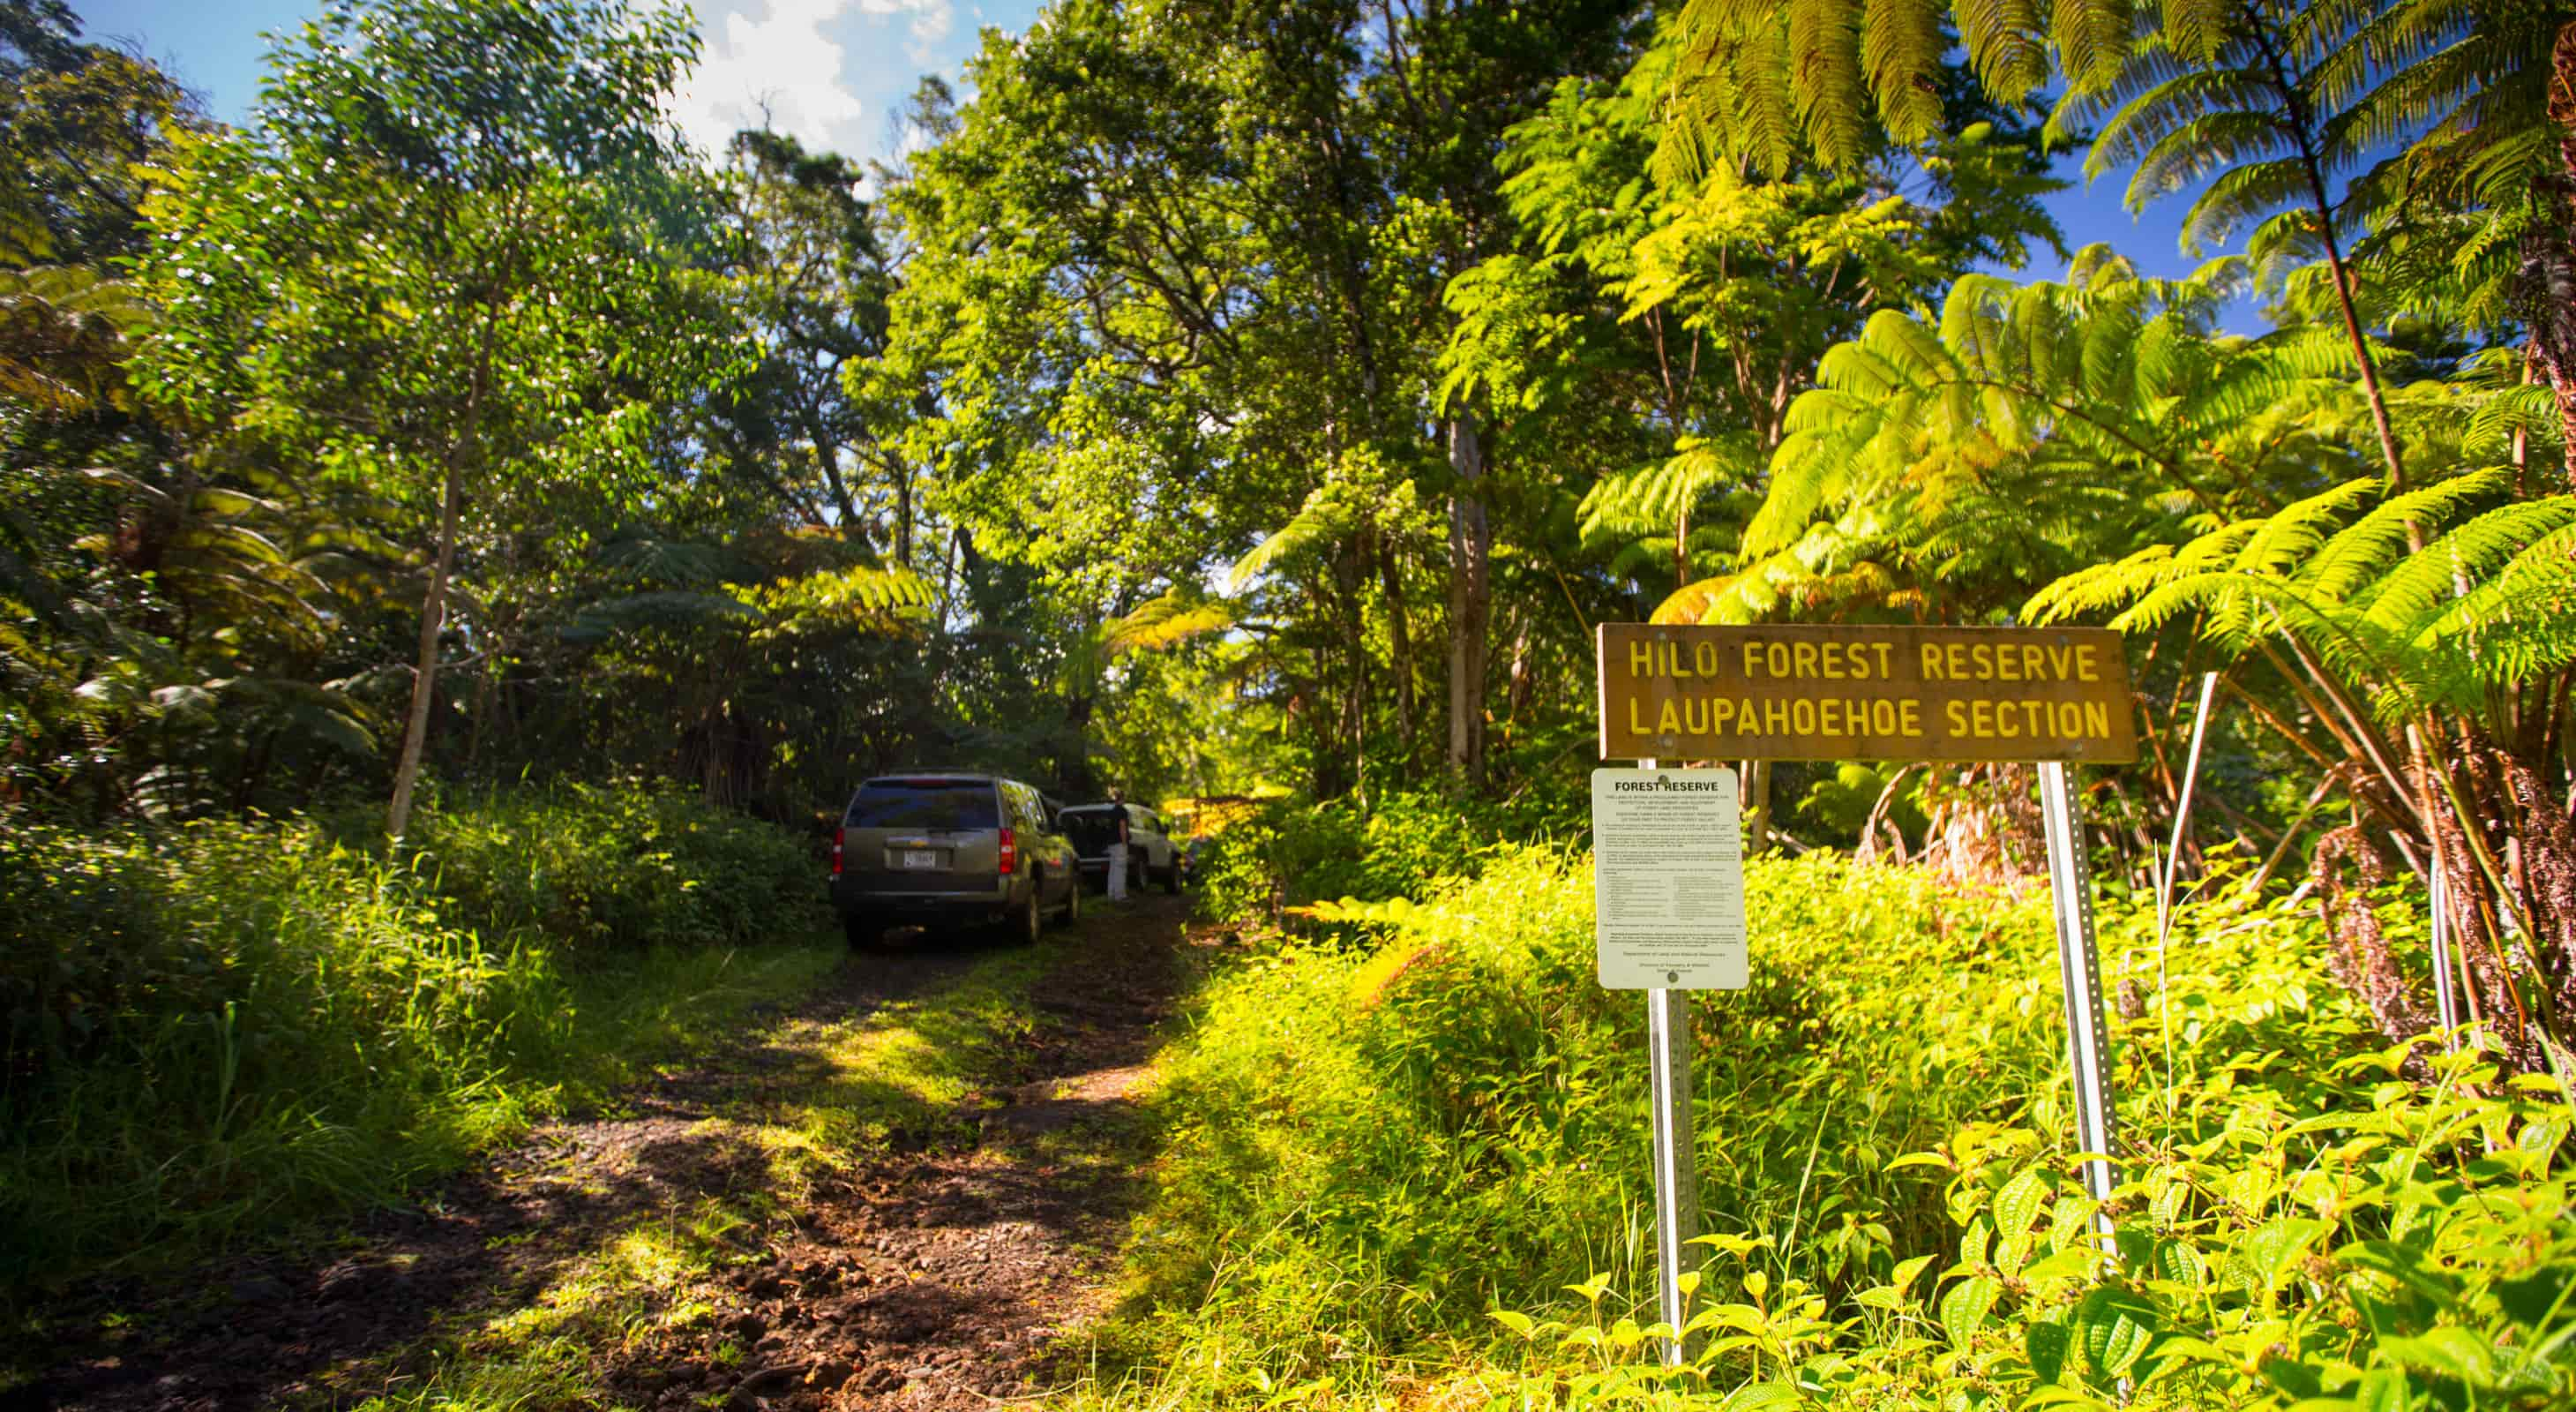 Laupahoehoe Forest Reserve